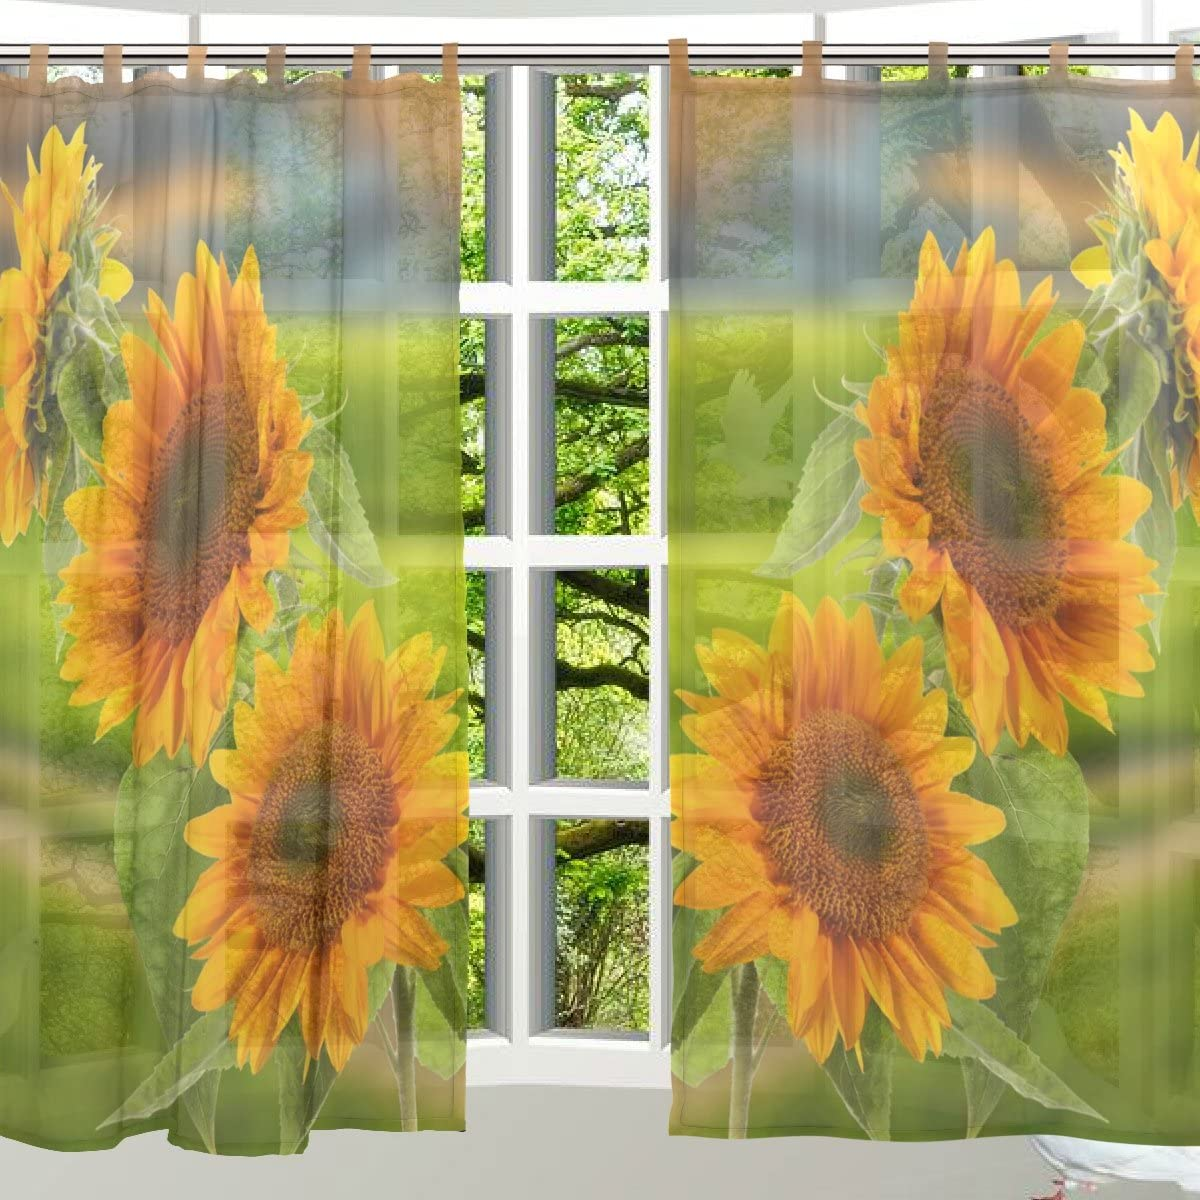 ALAZA 2 PCS Window Decoration Sheer Curtain Panels,Cute Sunflower Floral,Polyester Window Gauze Curtains Living Room Bedroom Kid s Office Window Tie Top Curtain 55×78 inch Two Panels Set Design 50